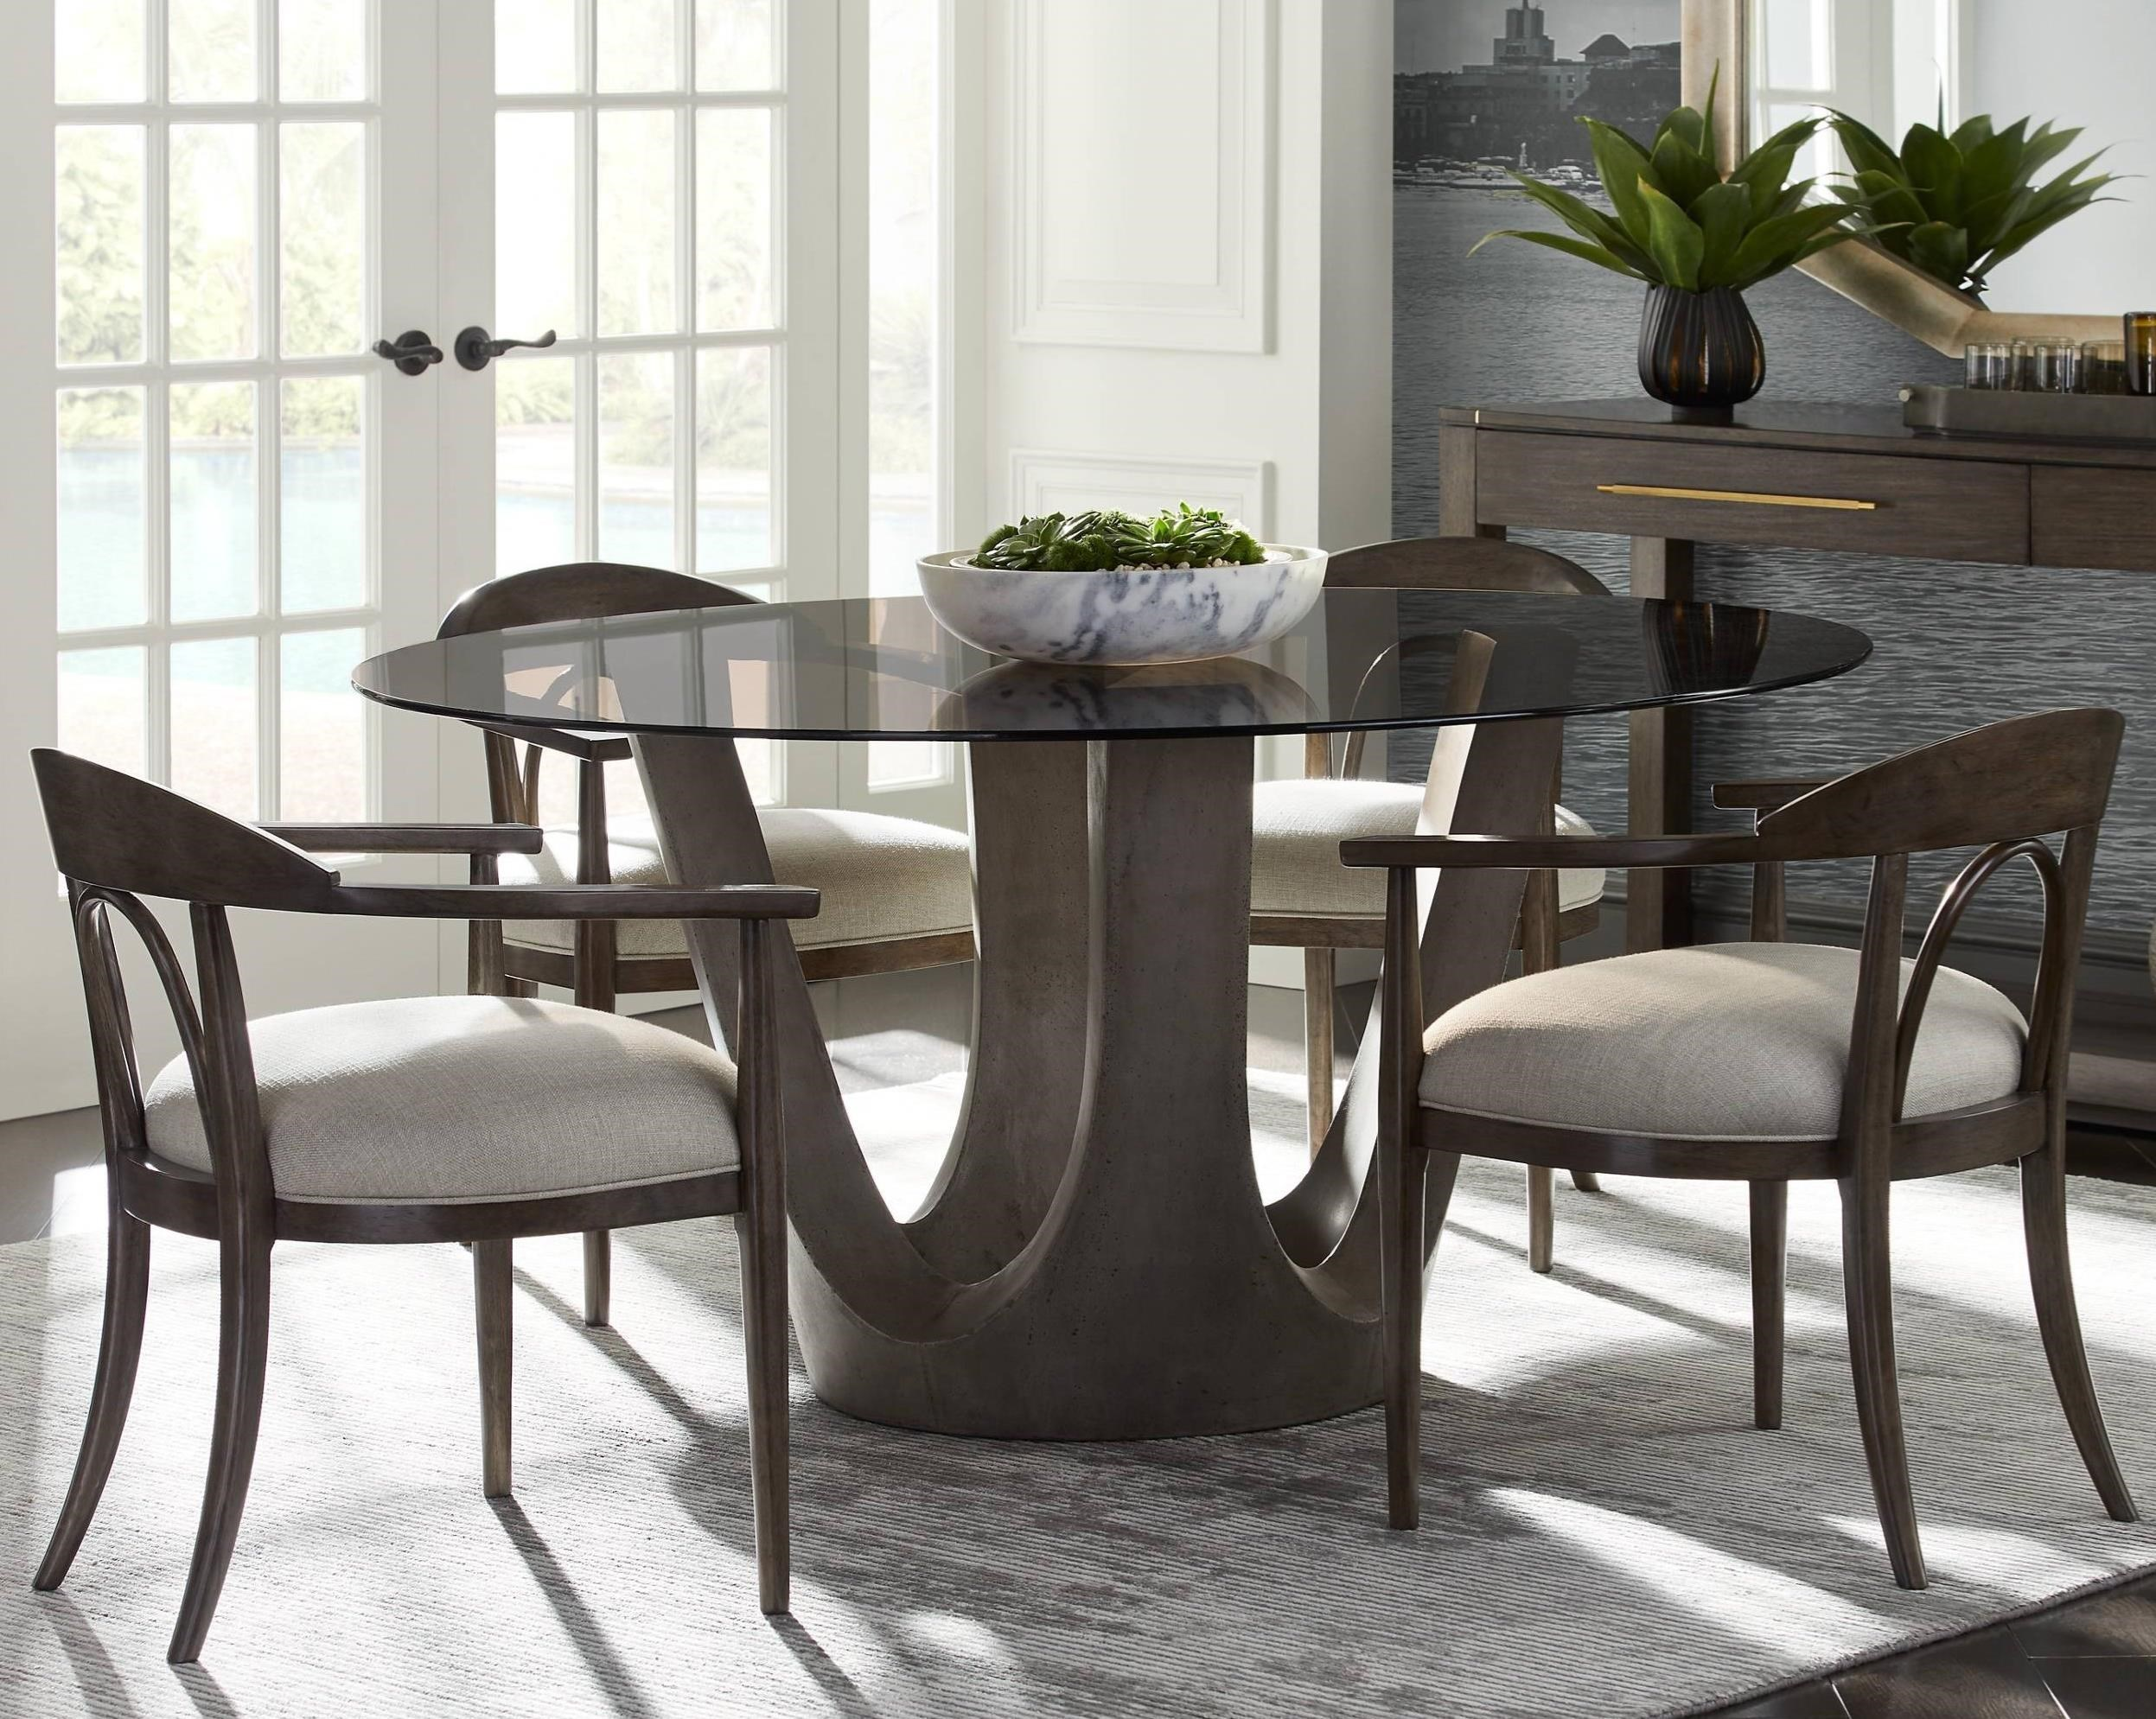 Panavista 5 Piece 54 Glass Top Dining Table Set By Stanley Furniture At Dunk Bright Furniture